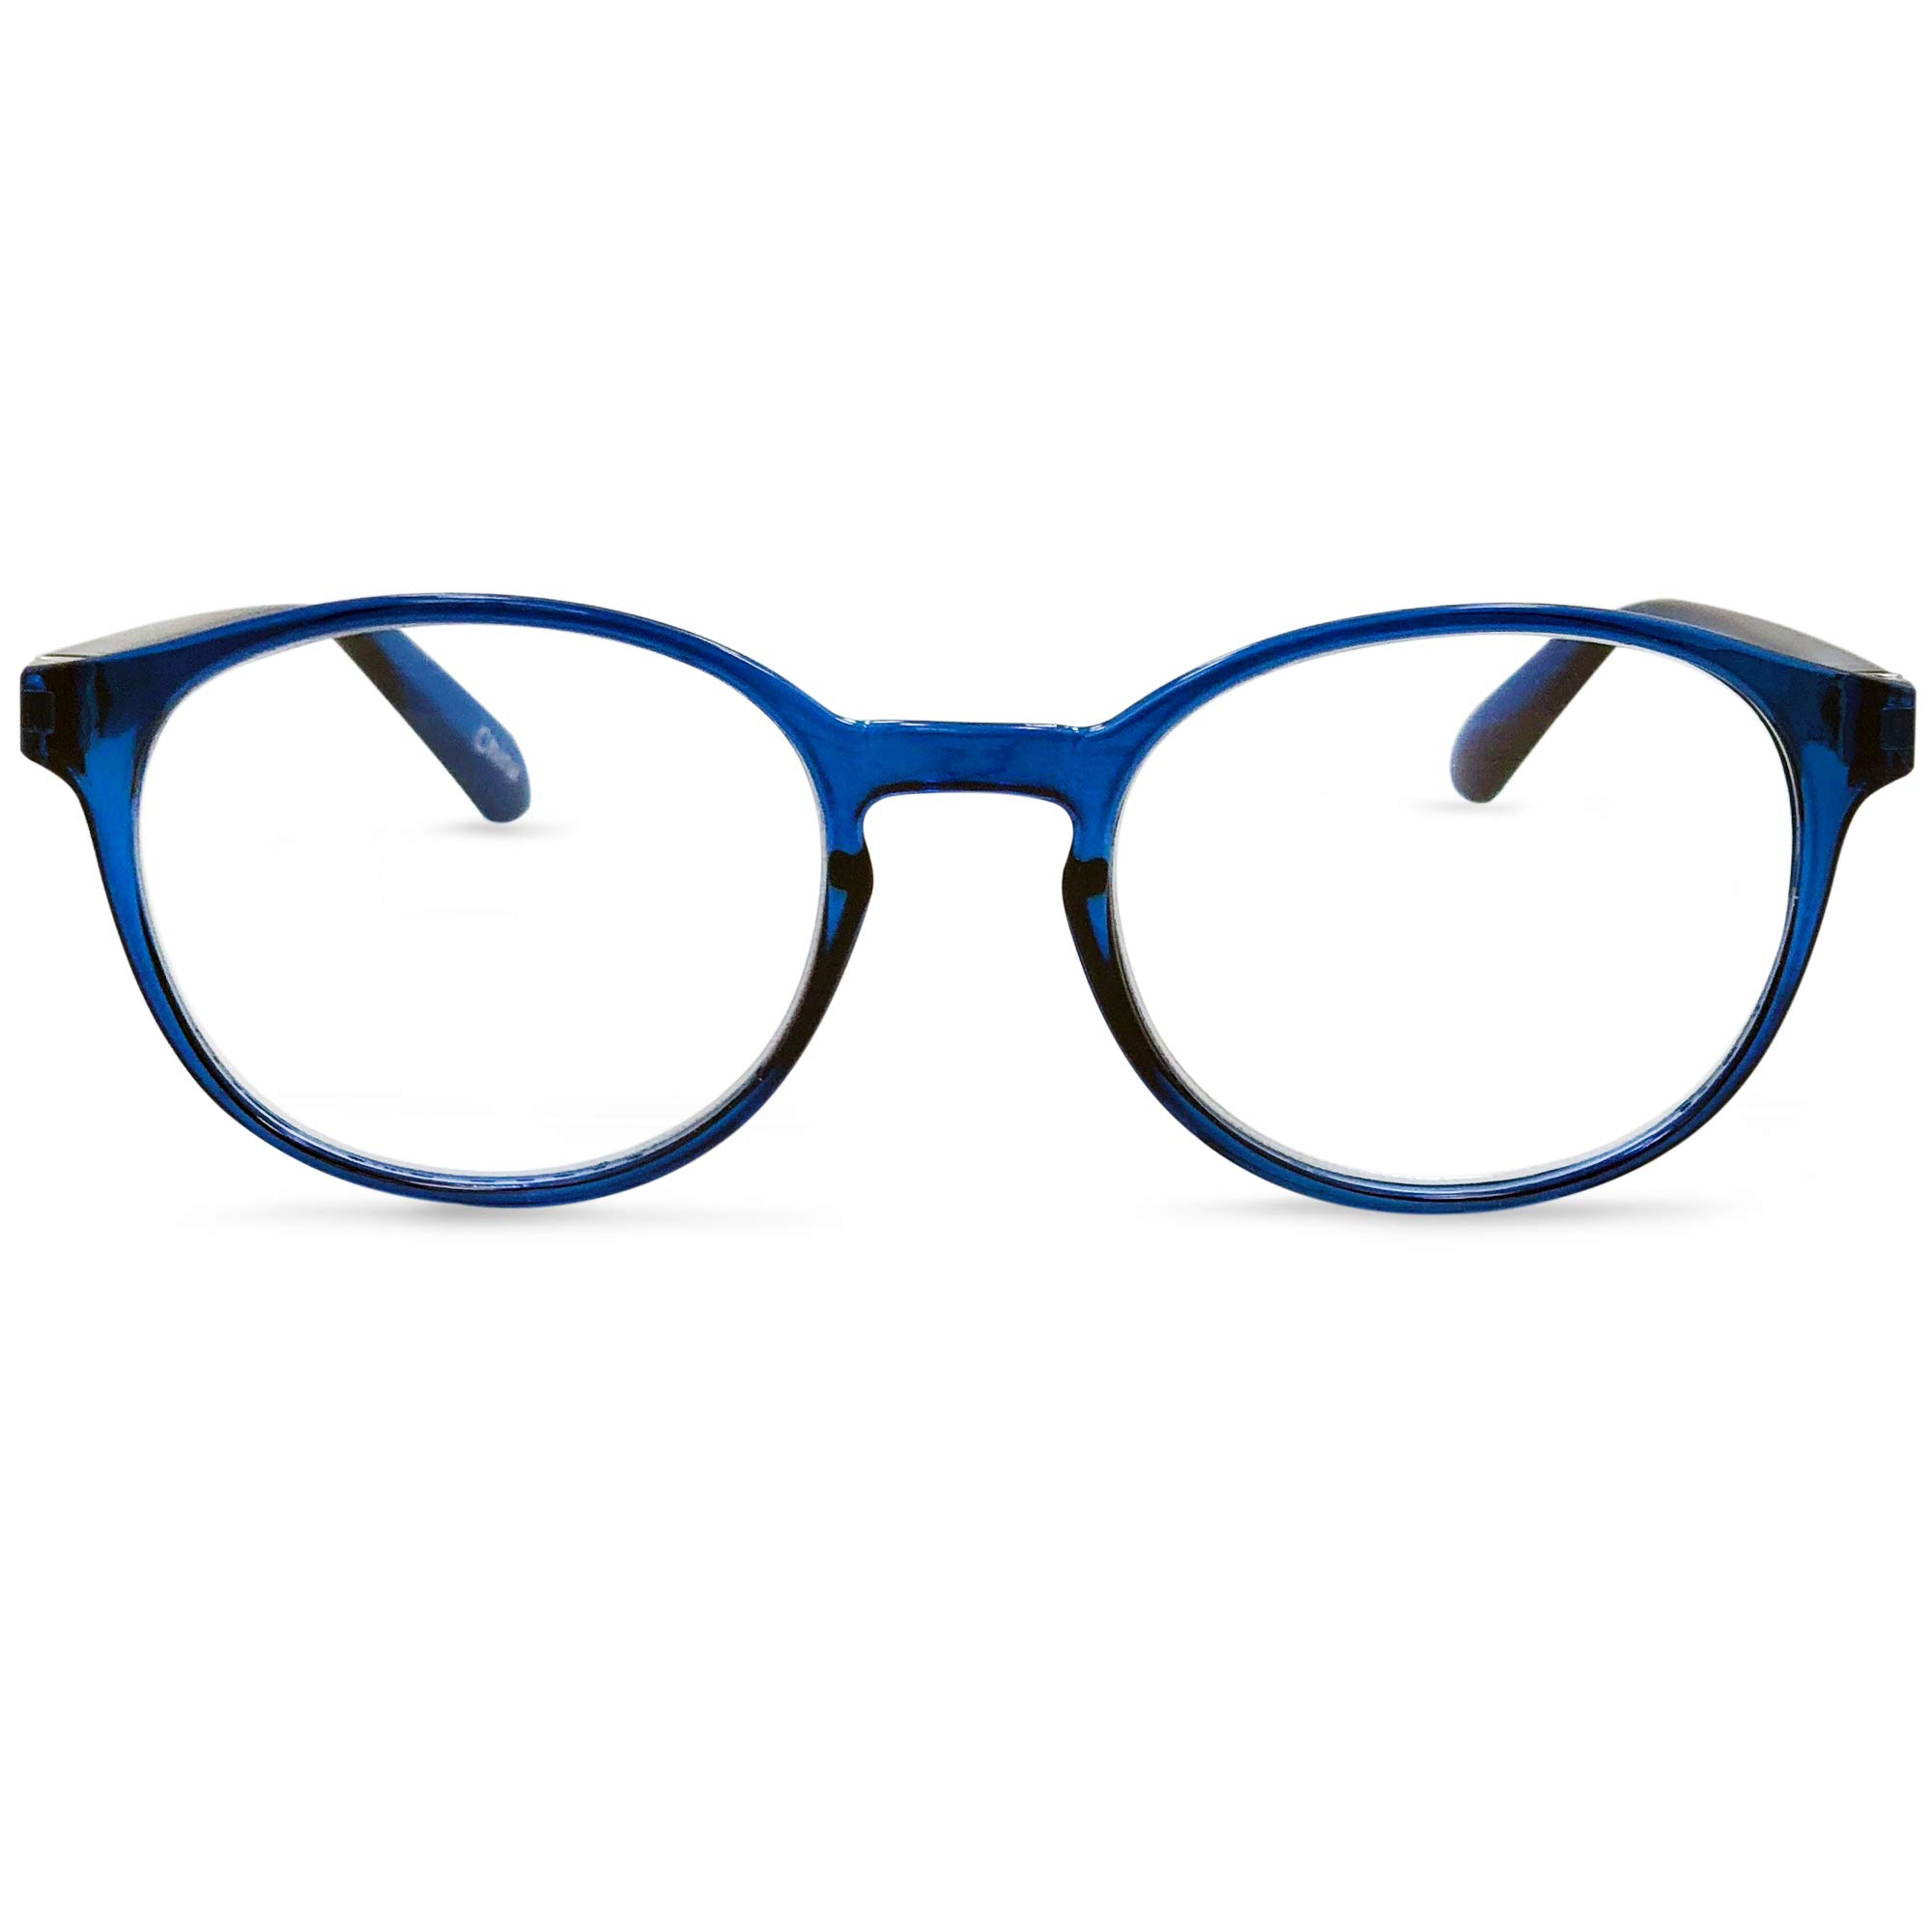 In Style Eyes Opulent Oval Clear Frame Reading Glasses Set with Case Blue +3.50